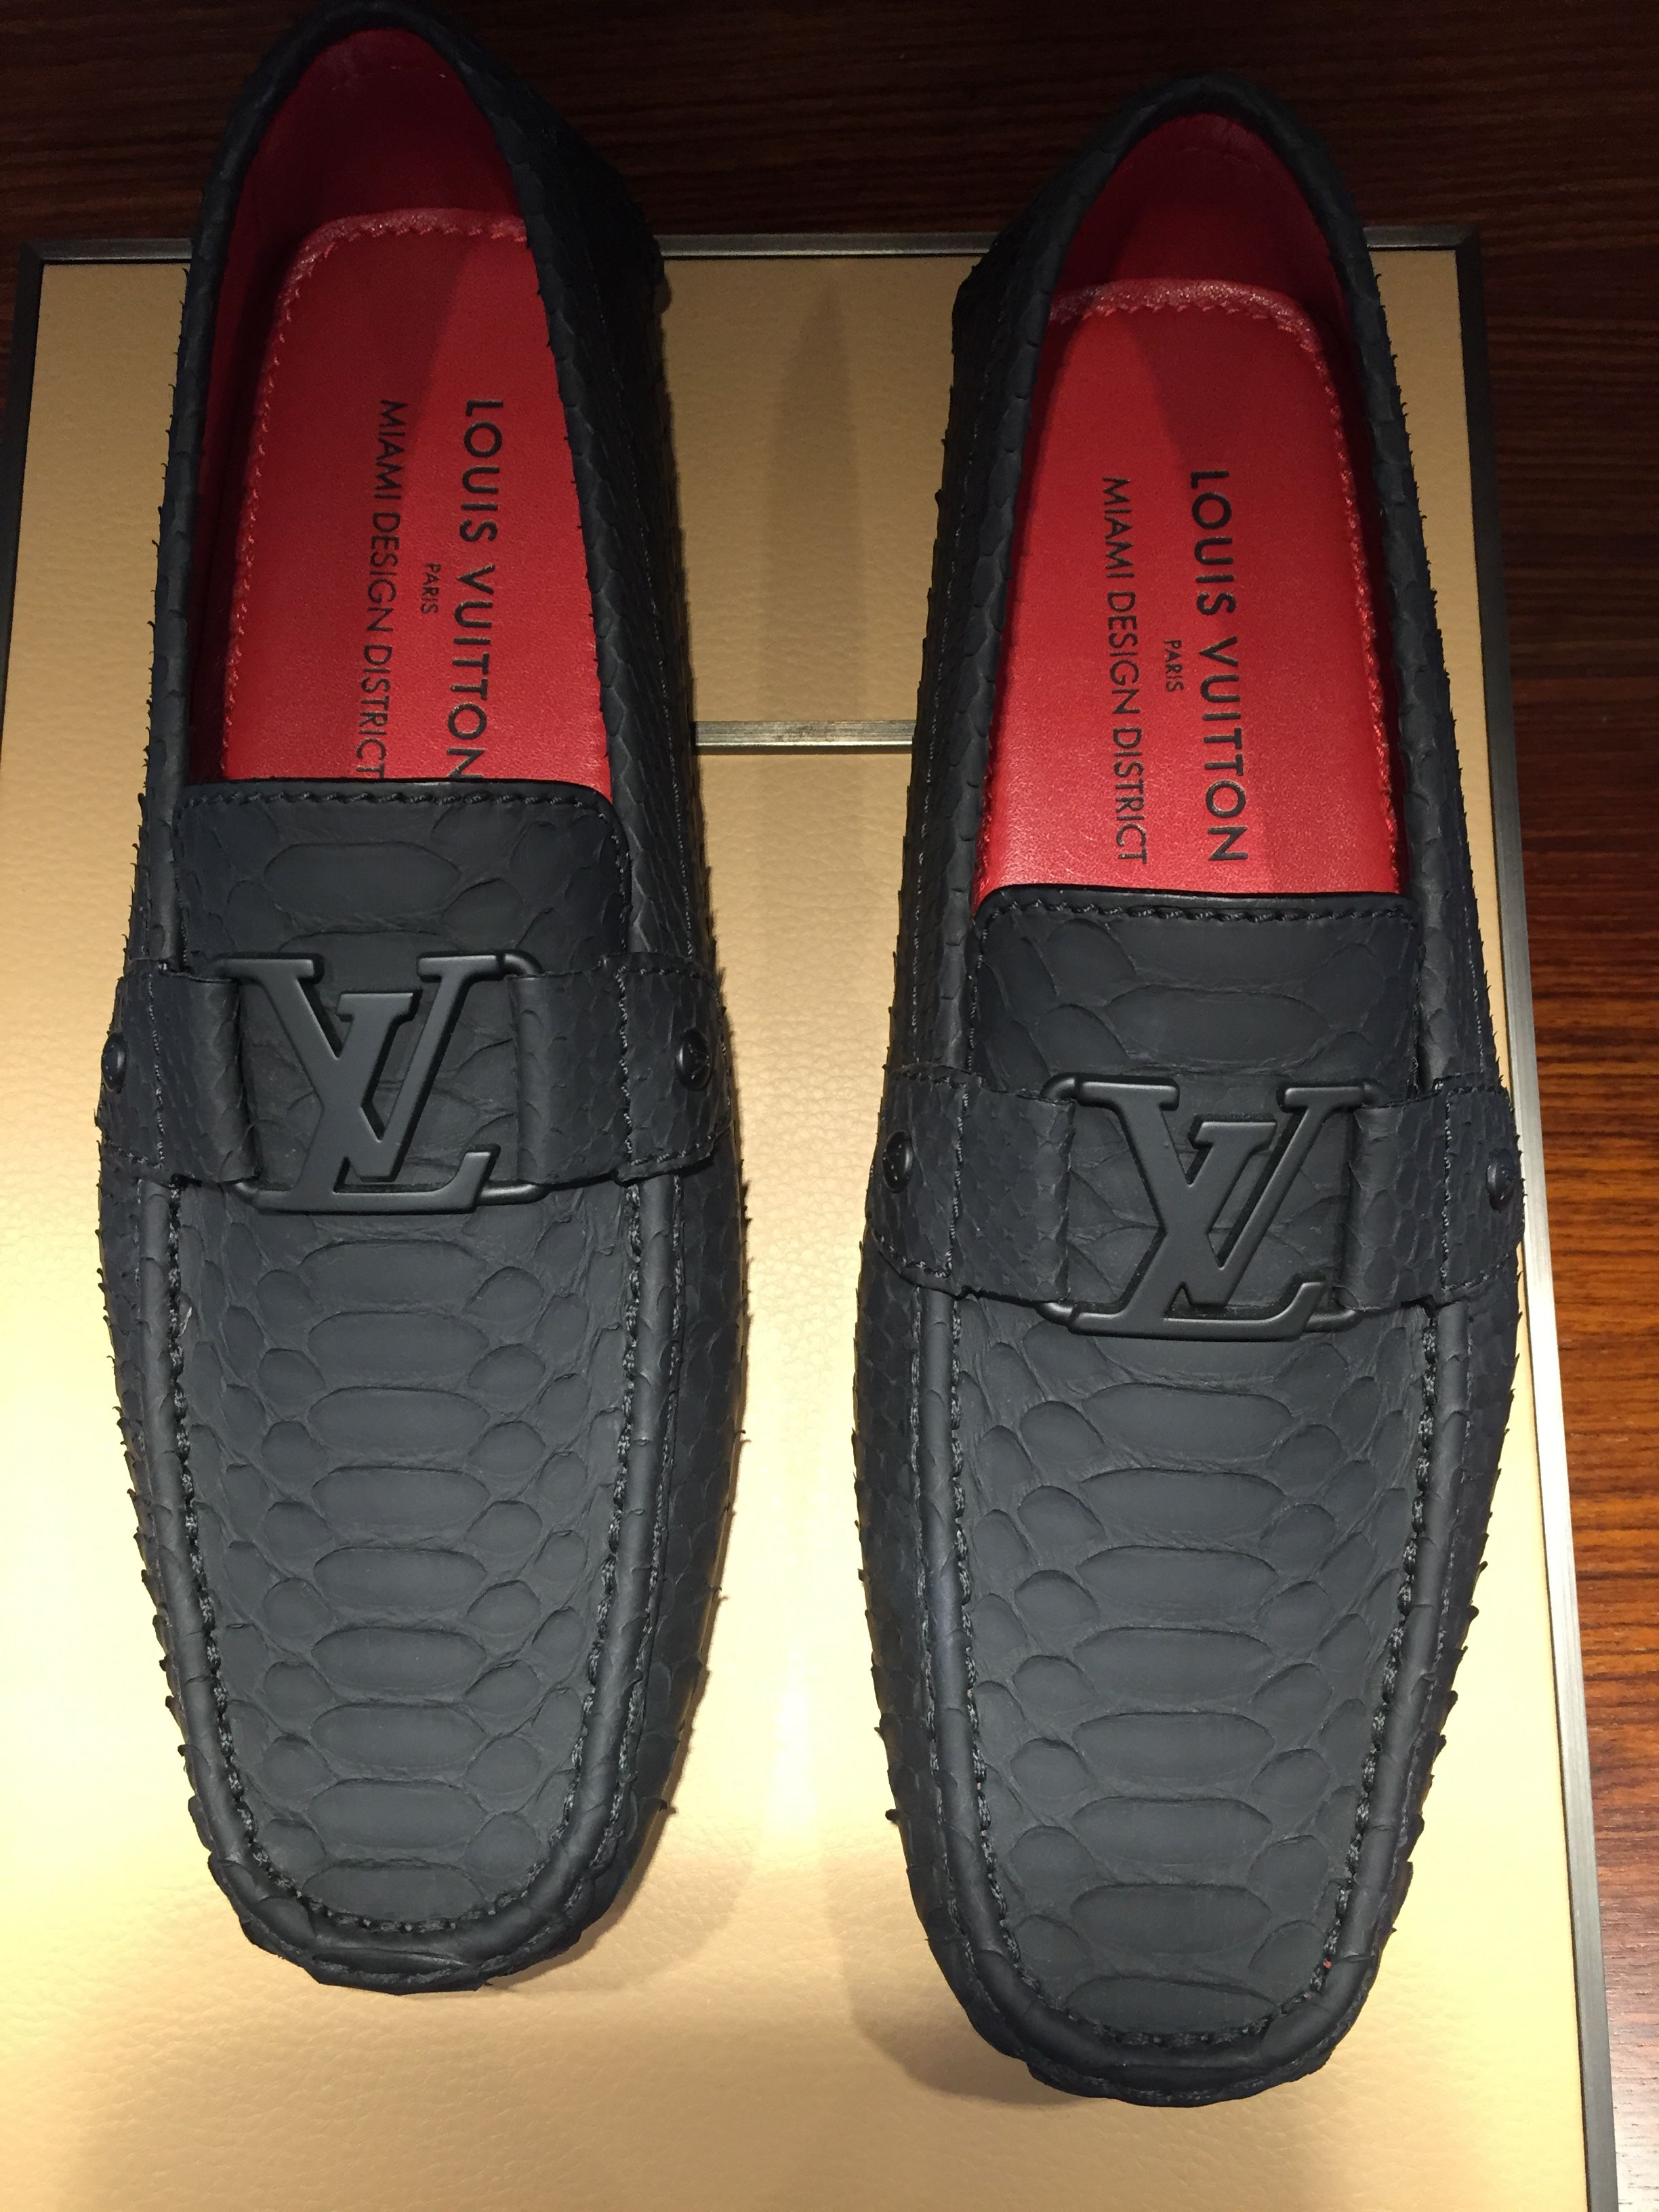 03bf5e07d LOUIS VUITTON Louis Vuitton Shoes Sneakers, Louis Vuitton Loafers, Lv  Shoes, Prom Shoes